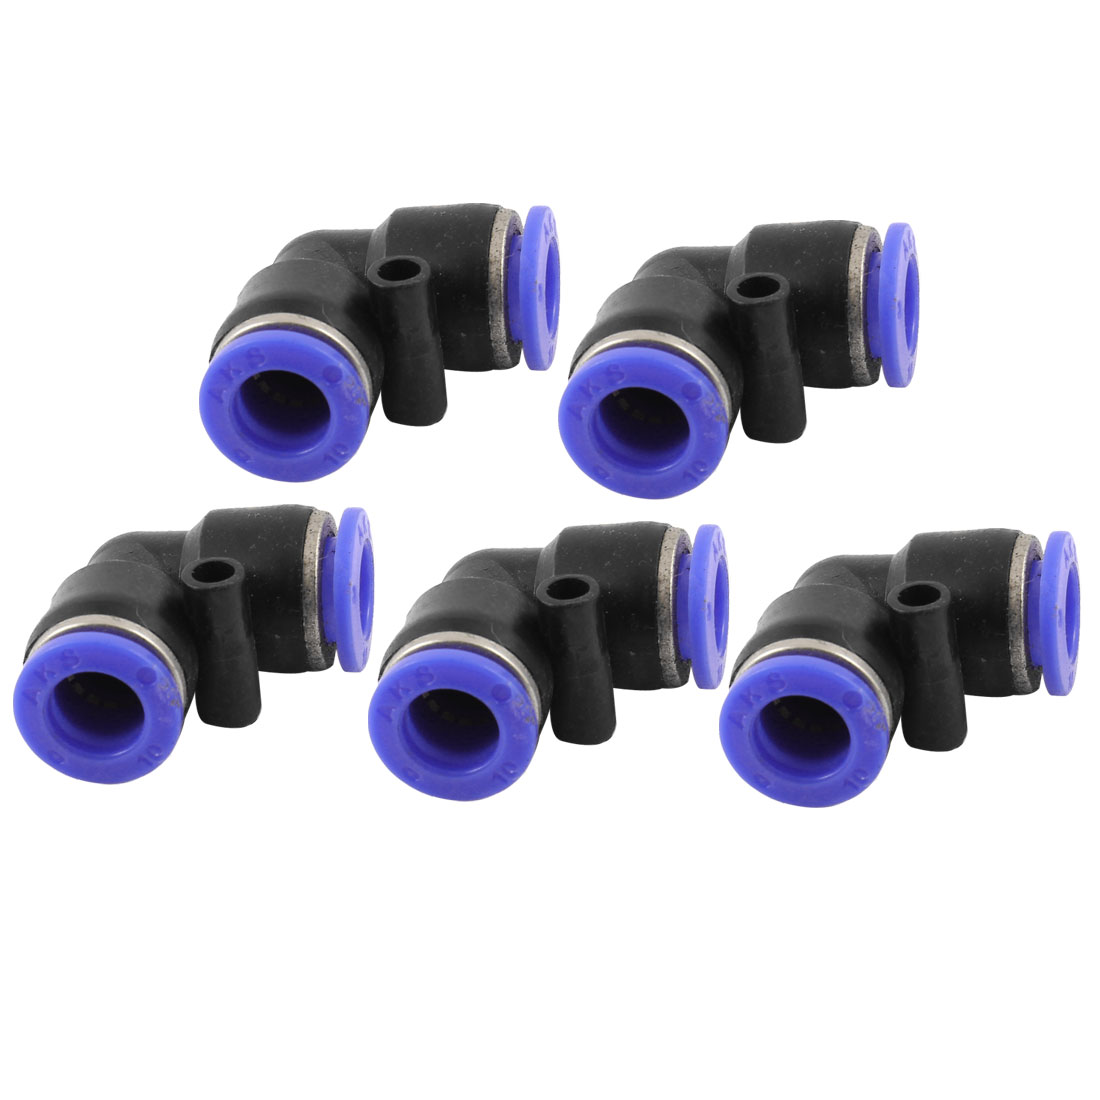 "5 Pcs 2/5"" to 2/5"" Elbow Quick Connect Tube Fittings for Water Filter System"